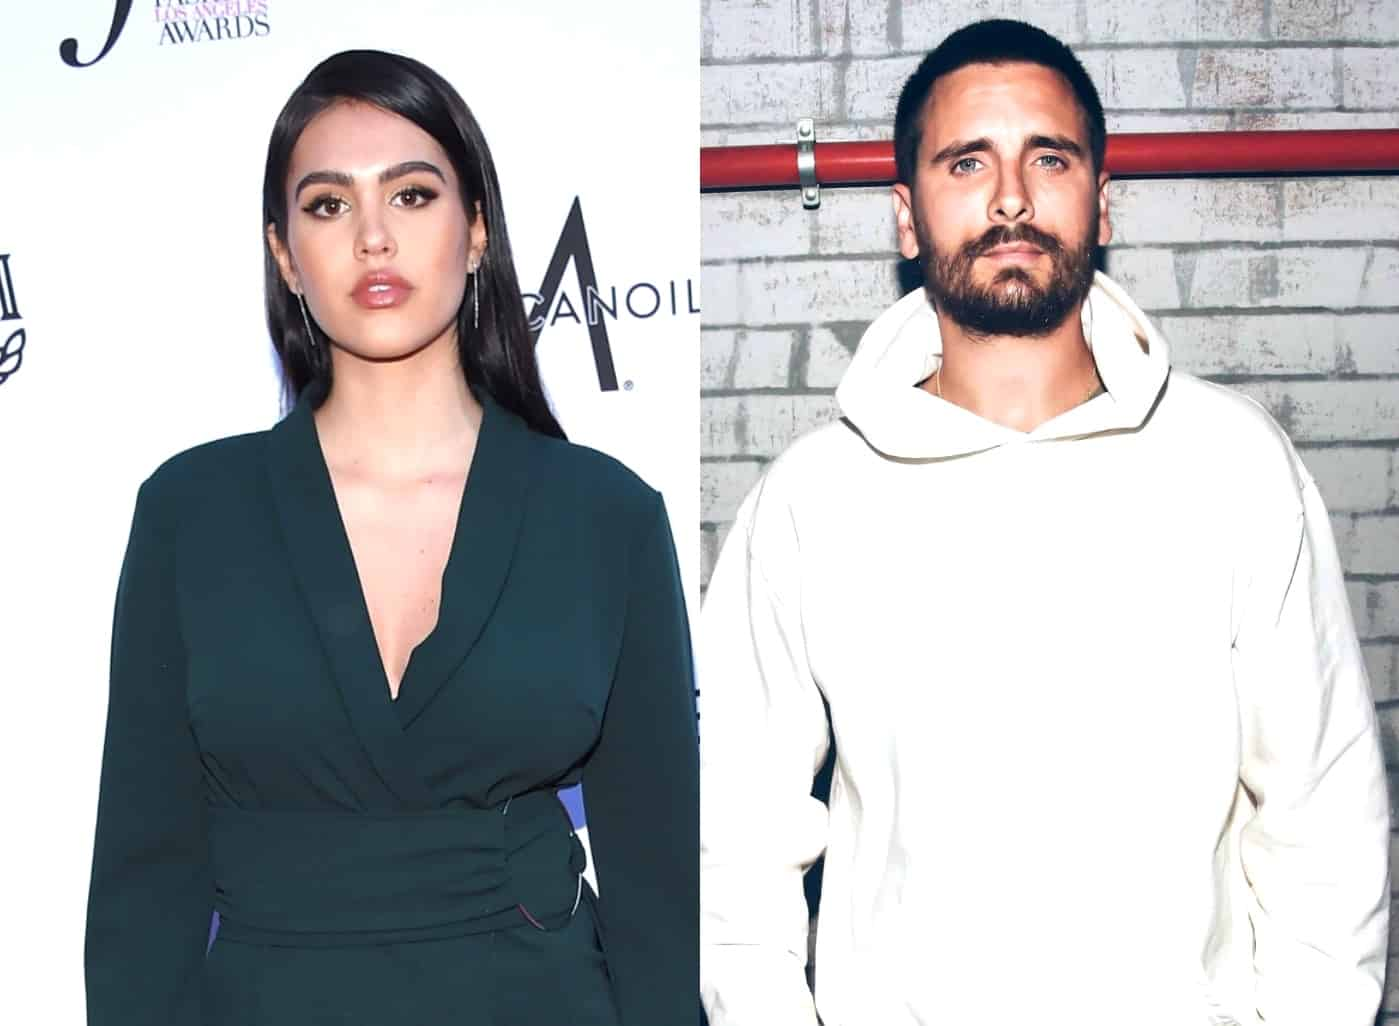 Amelia Hamlin And Scott Disick Officially Call It Quits And Seemingly Disagree About Who Ended Things As Amelia's RHOBH Star Mom Lisa Rinna Reacts To The Split